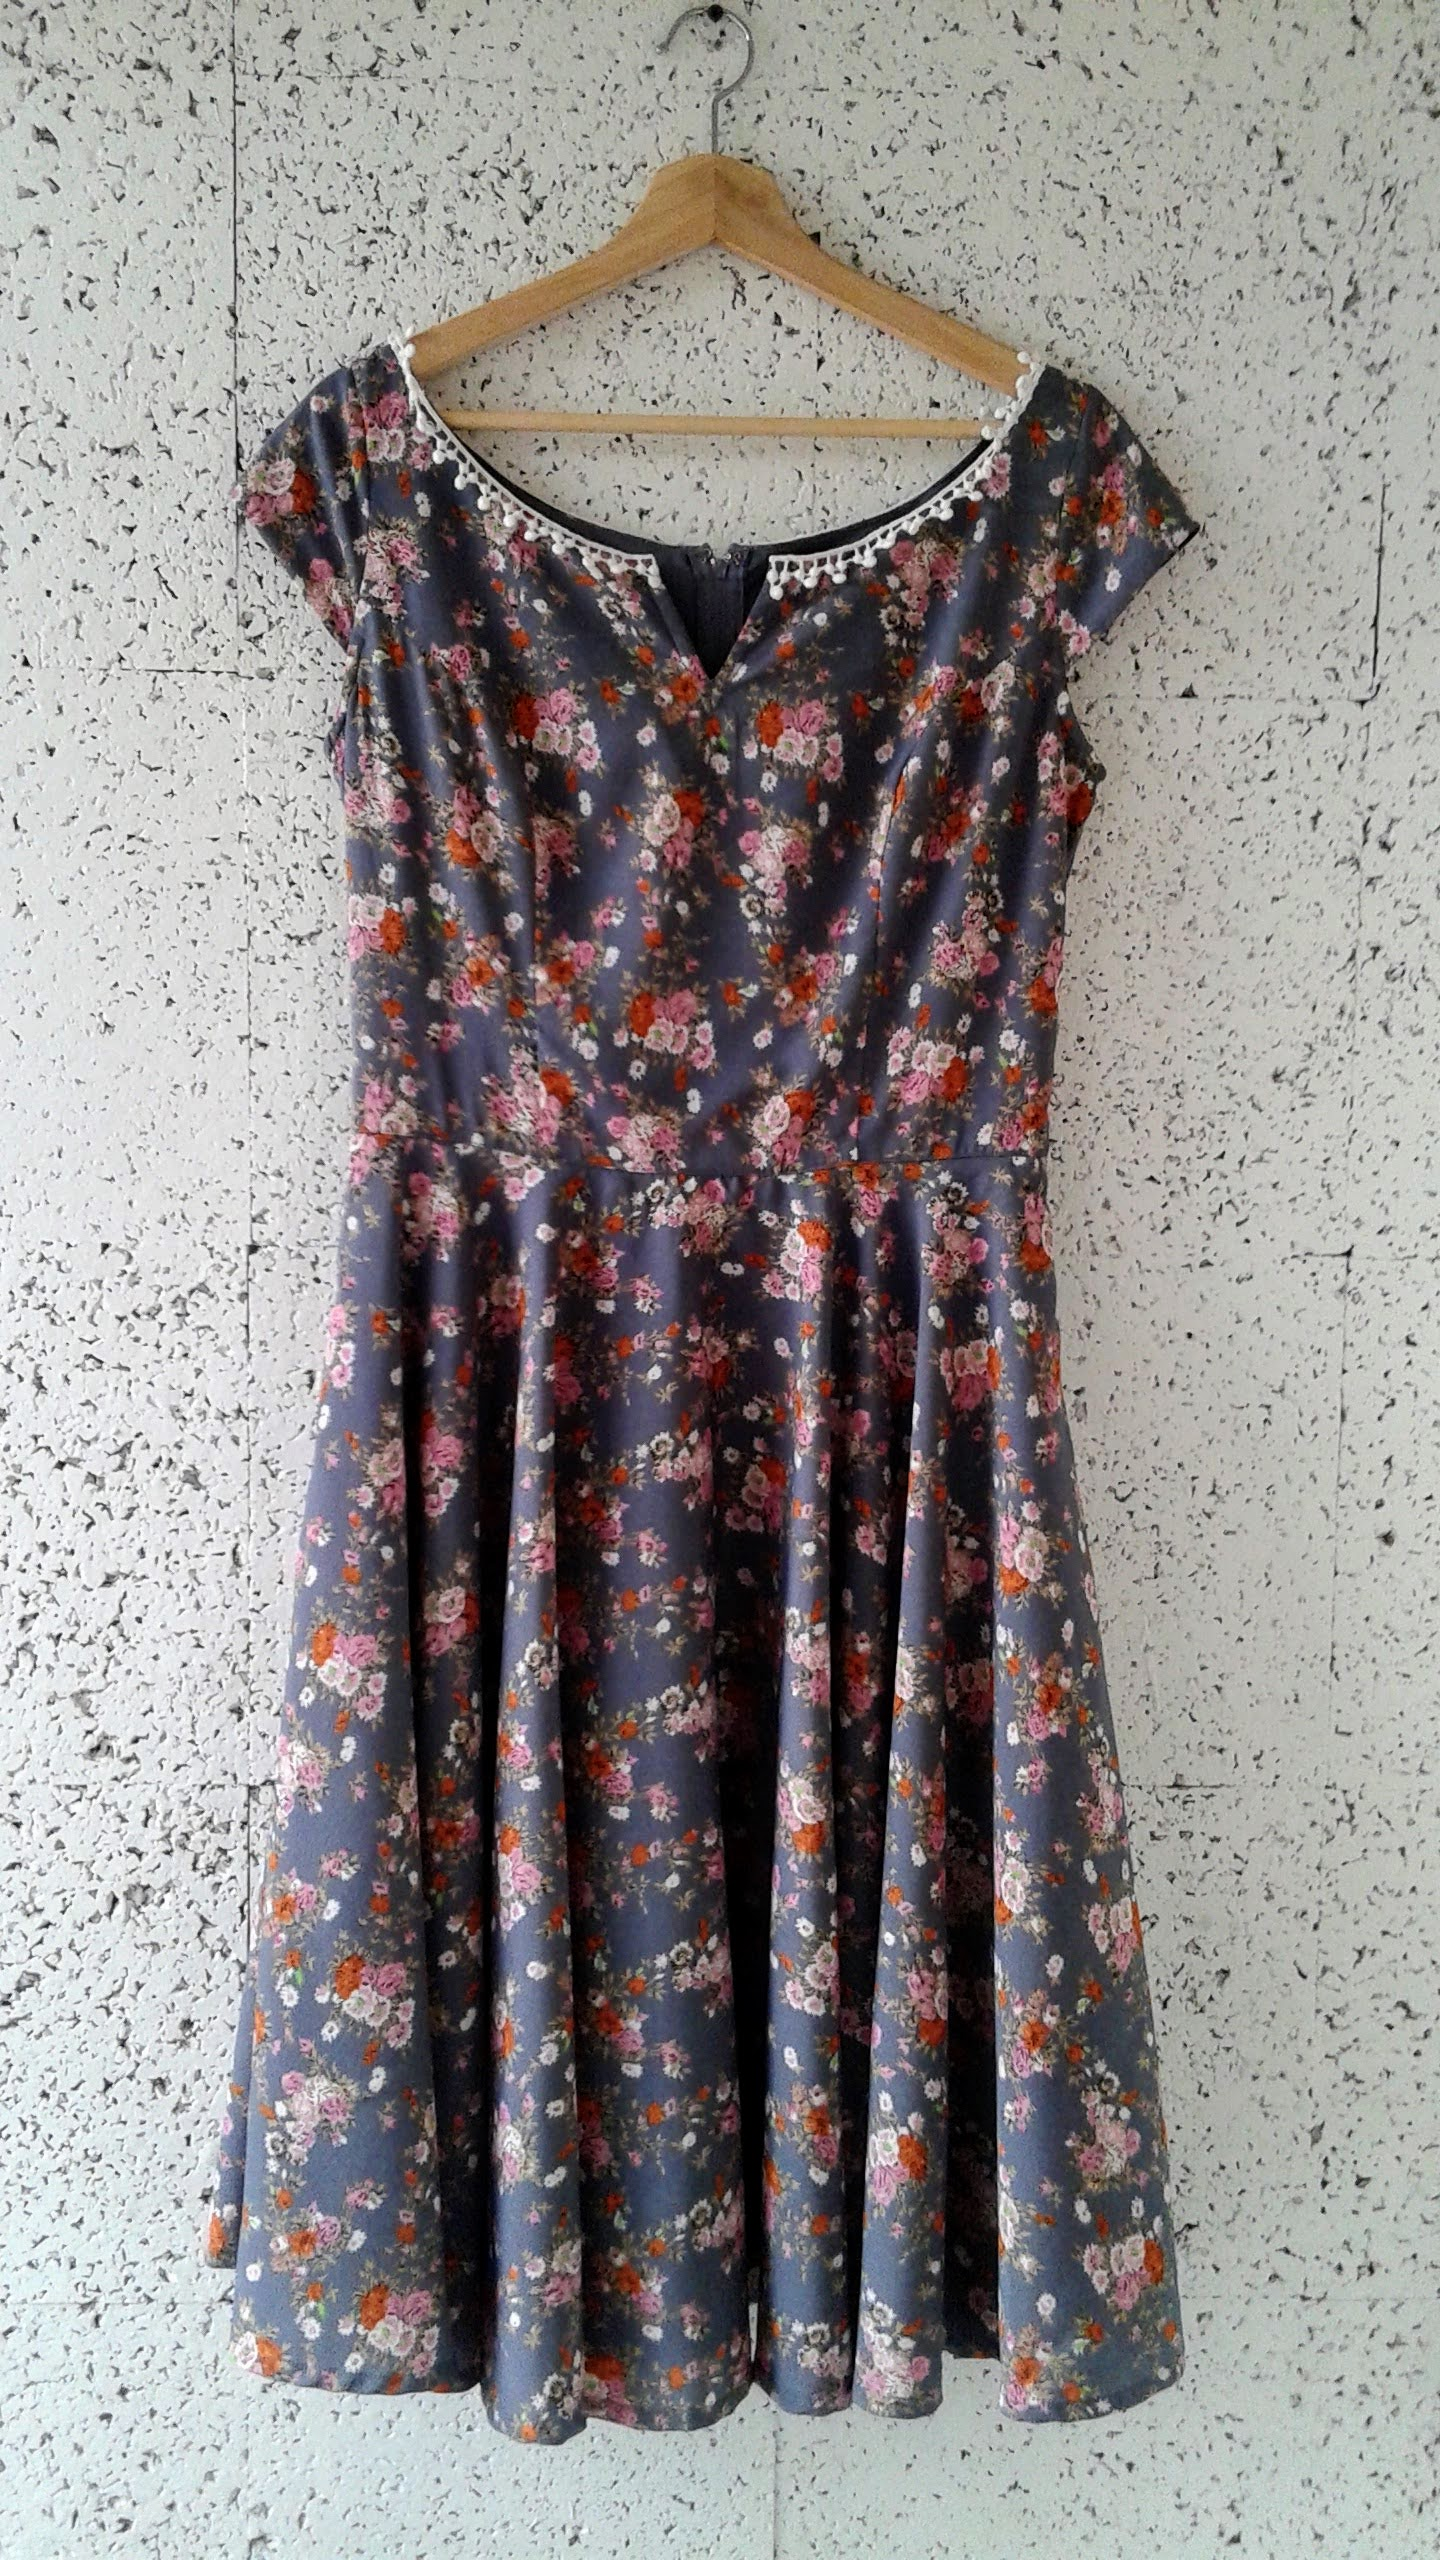 Hell Bunny dress; Size M/L, $48